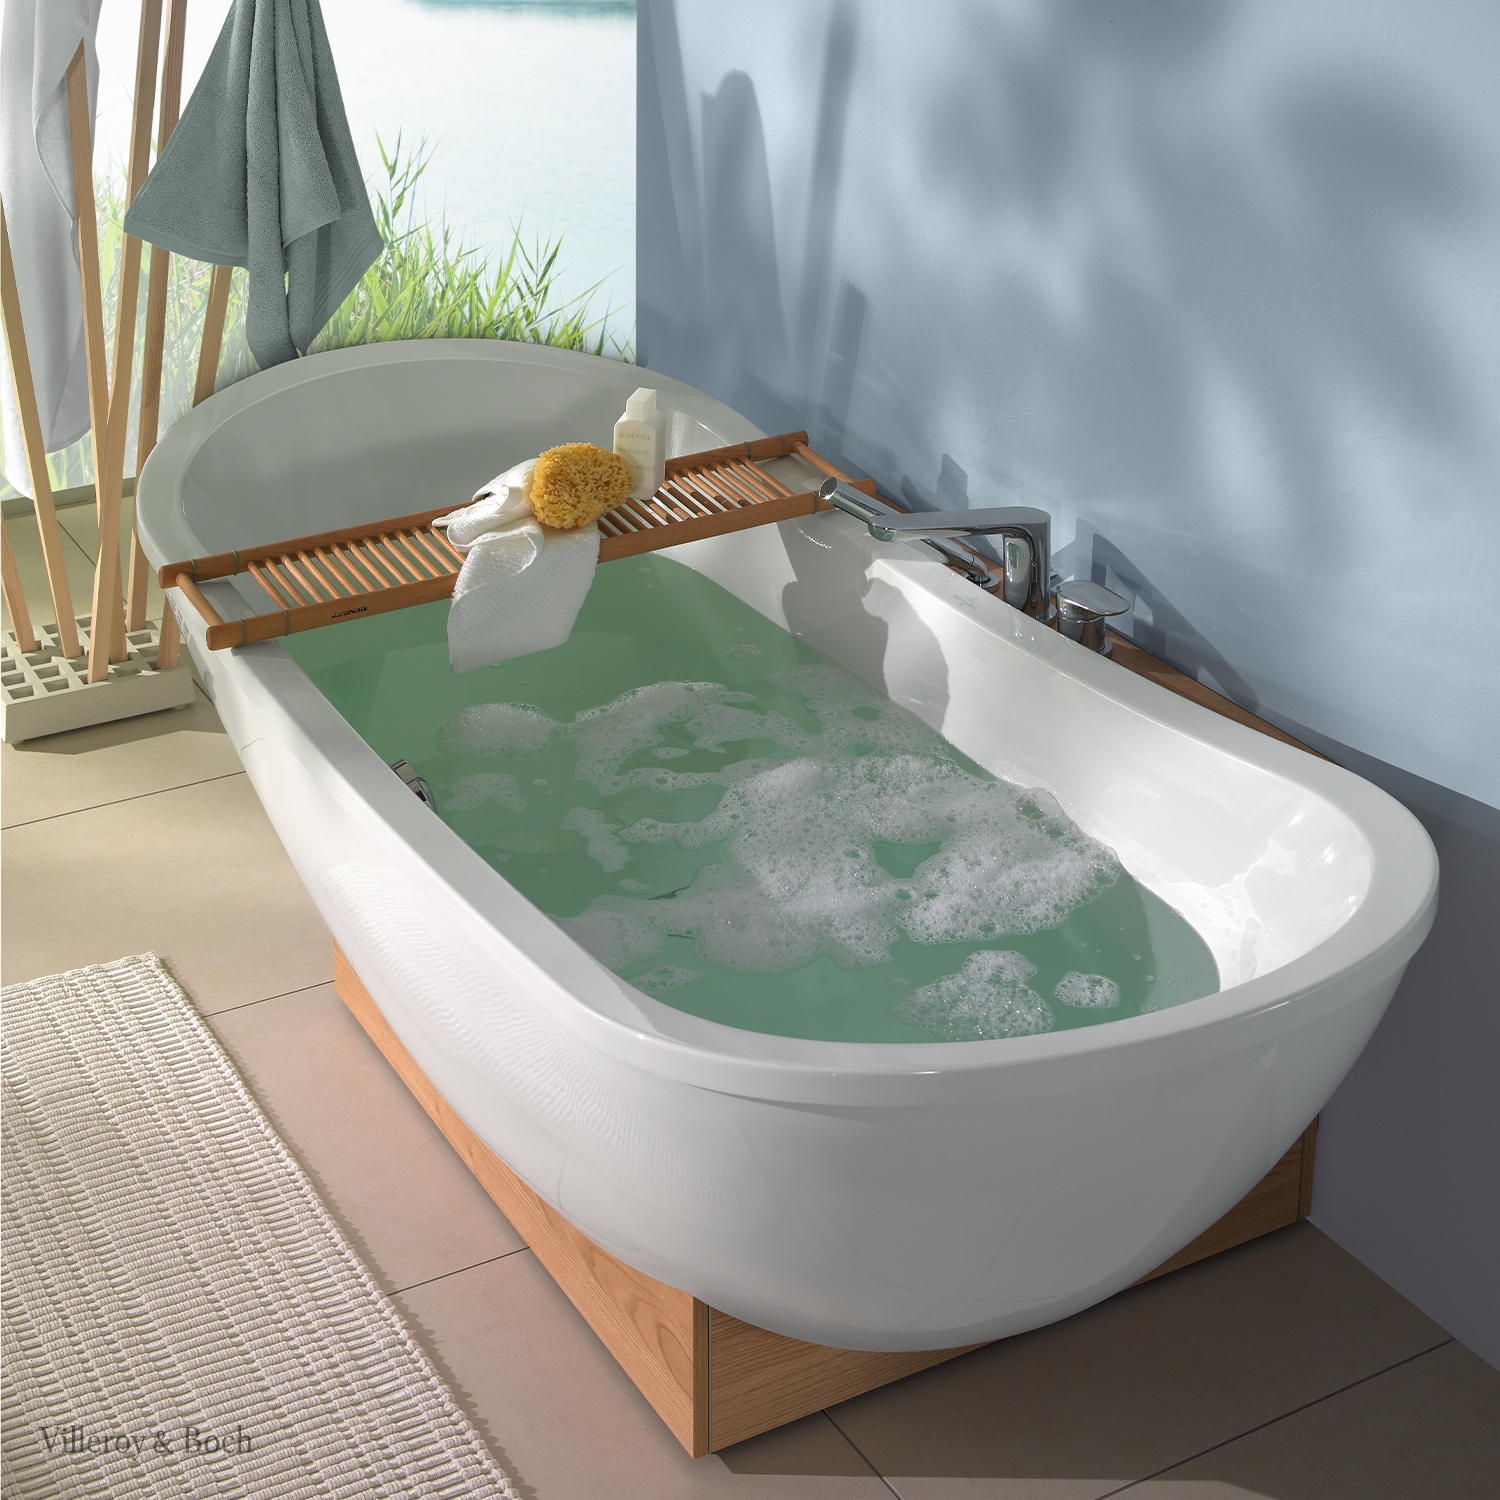 Wellness In Your Own Bathroom At Home Let S Go In 2020 Badewanne Handtucher